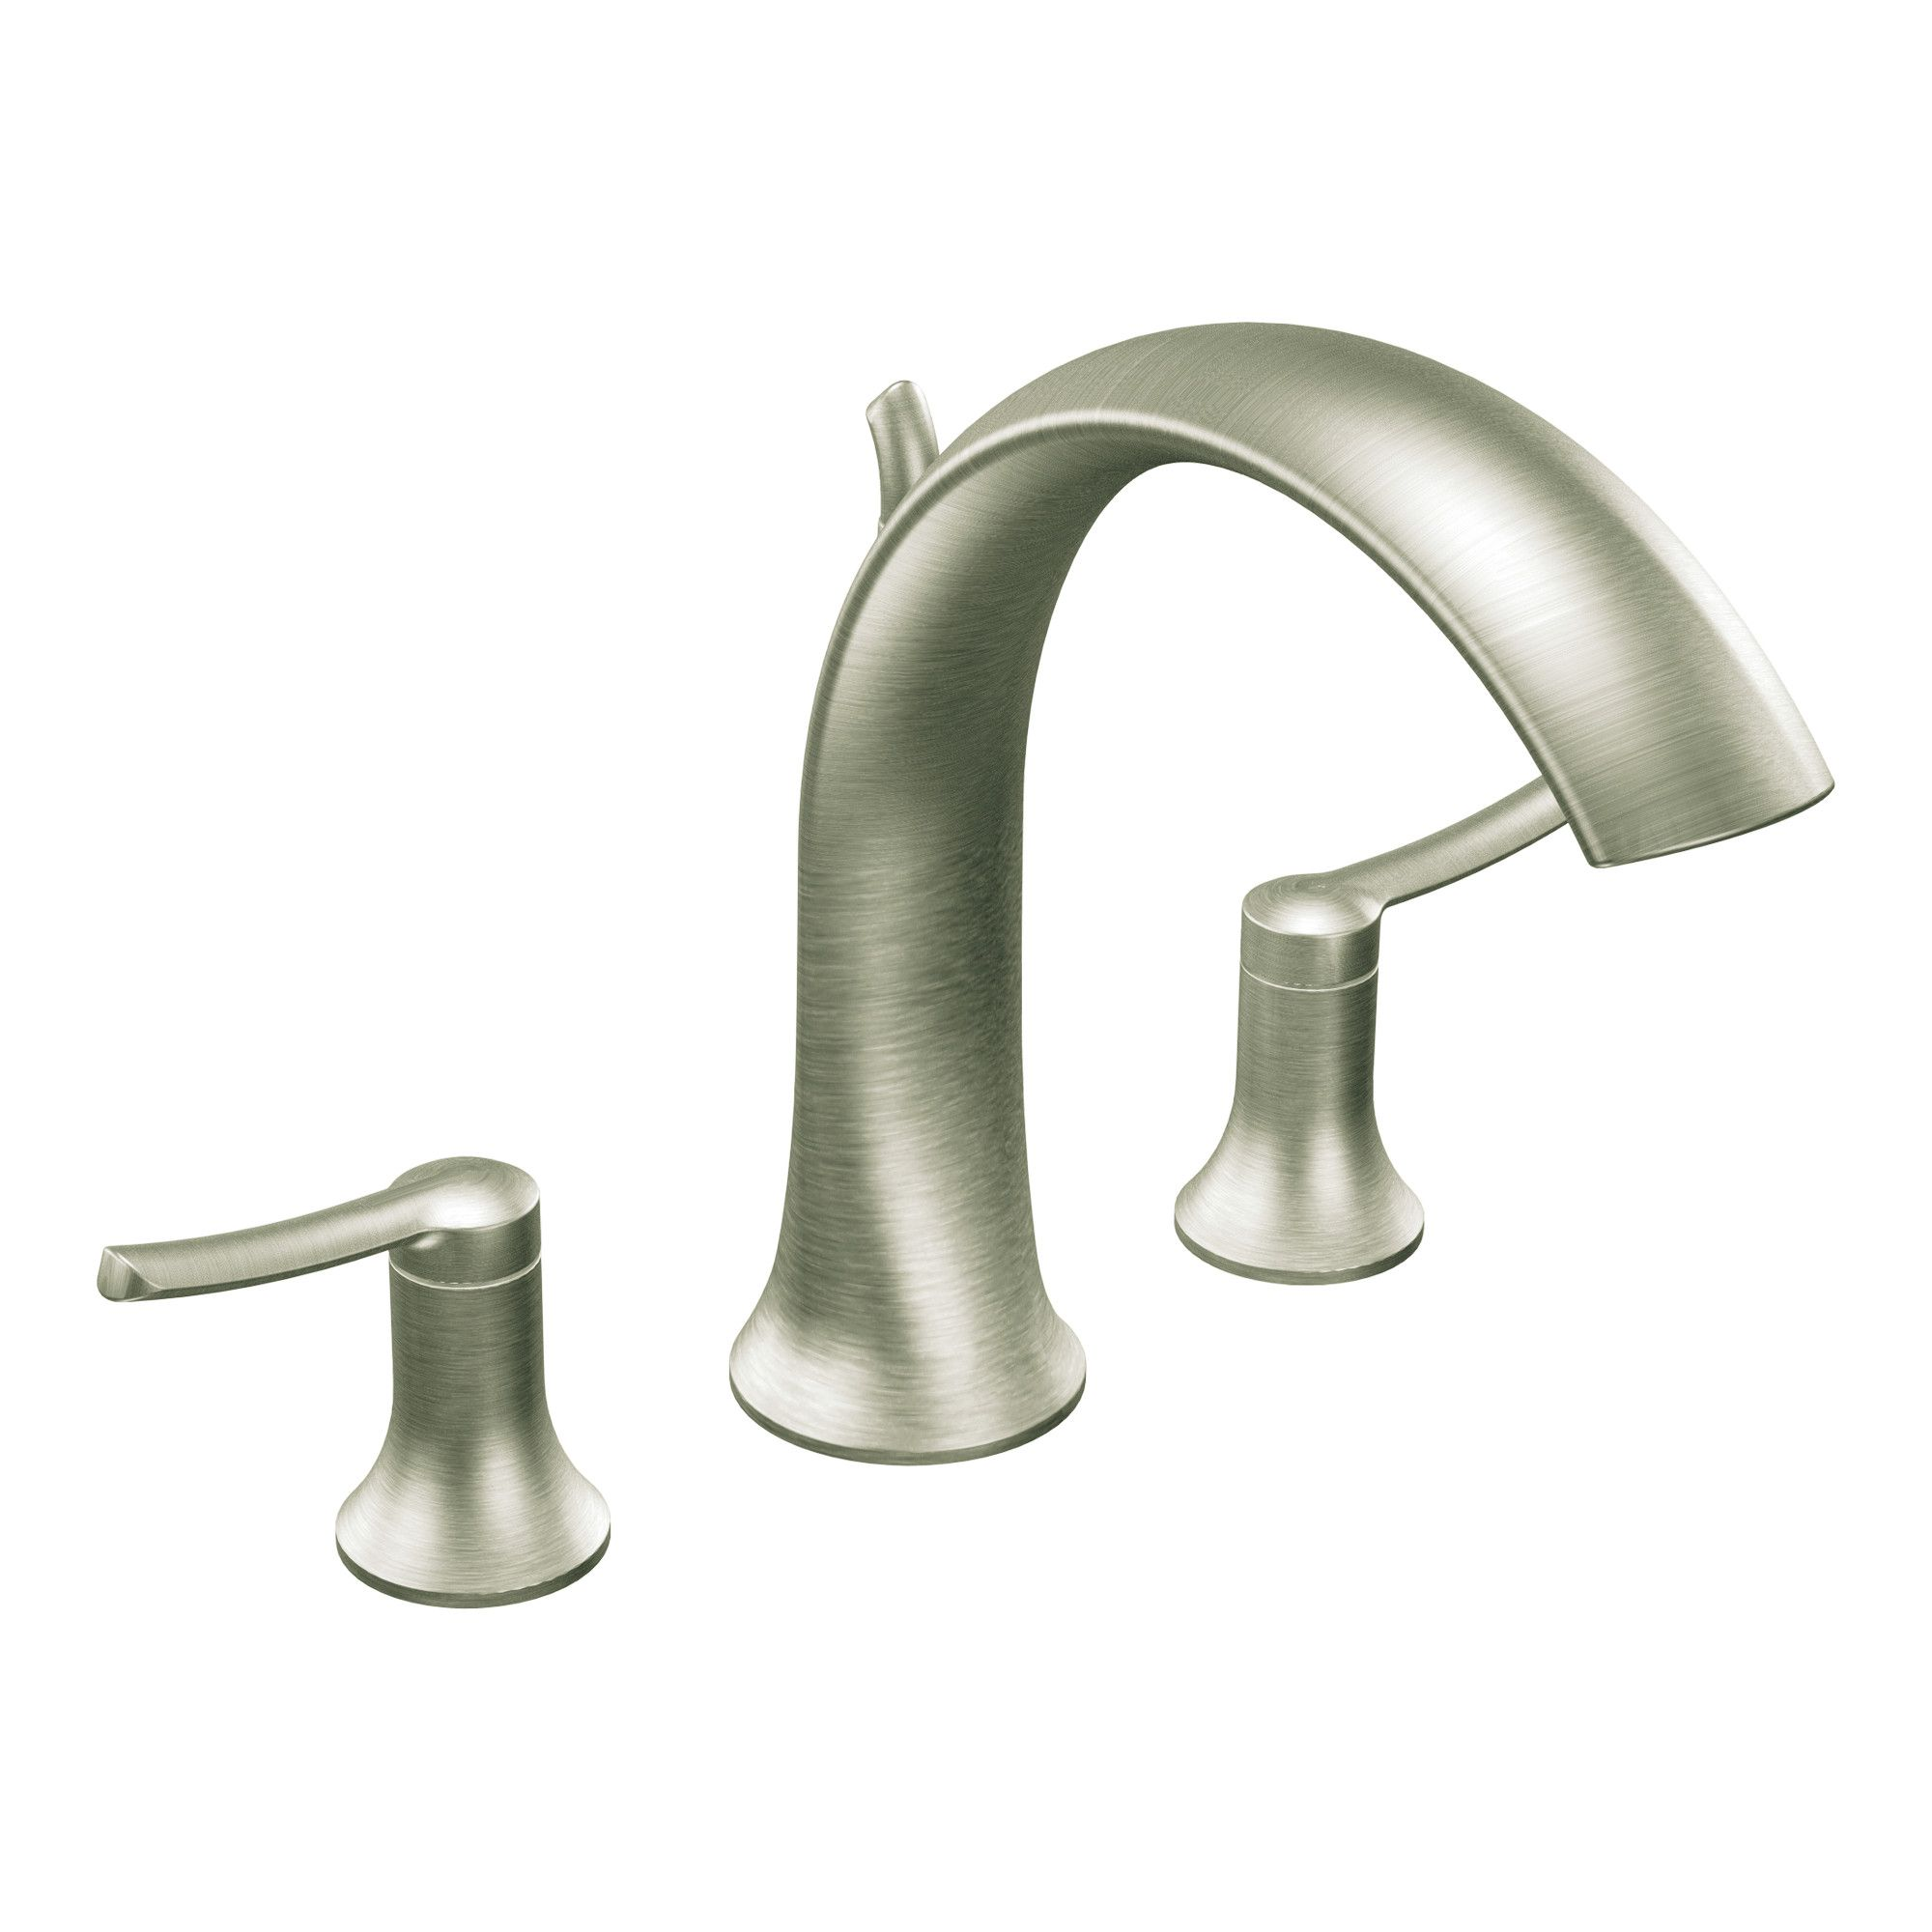 Moen Brushed Nickel Two-Handle High Arc Roman Tub Faucet | Brushed ...